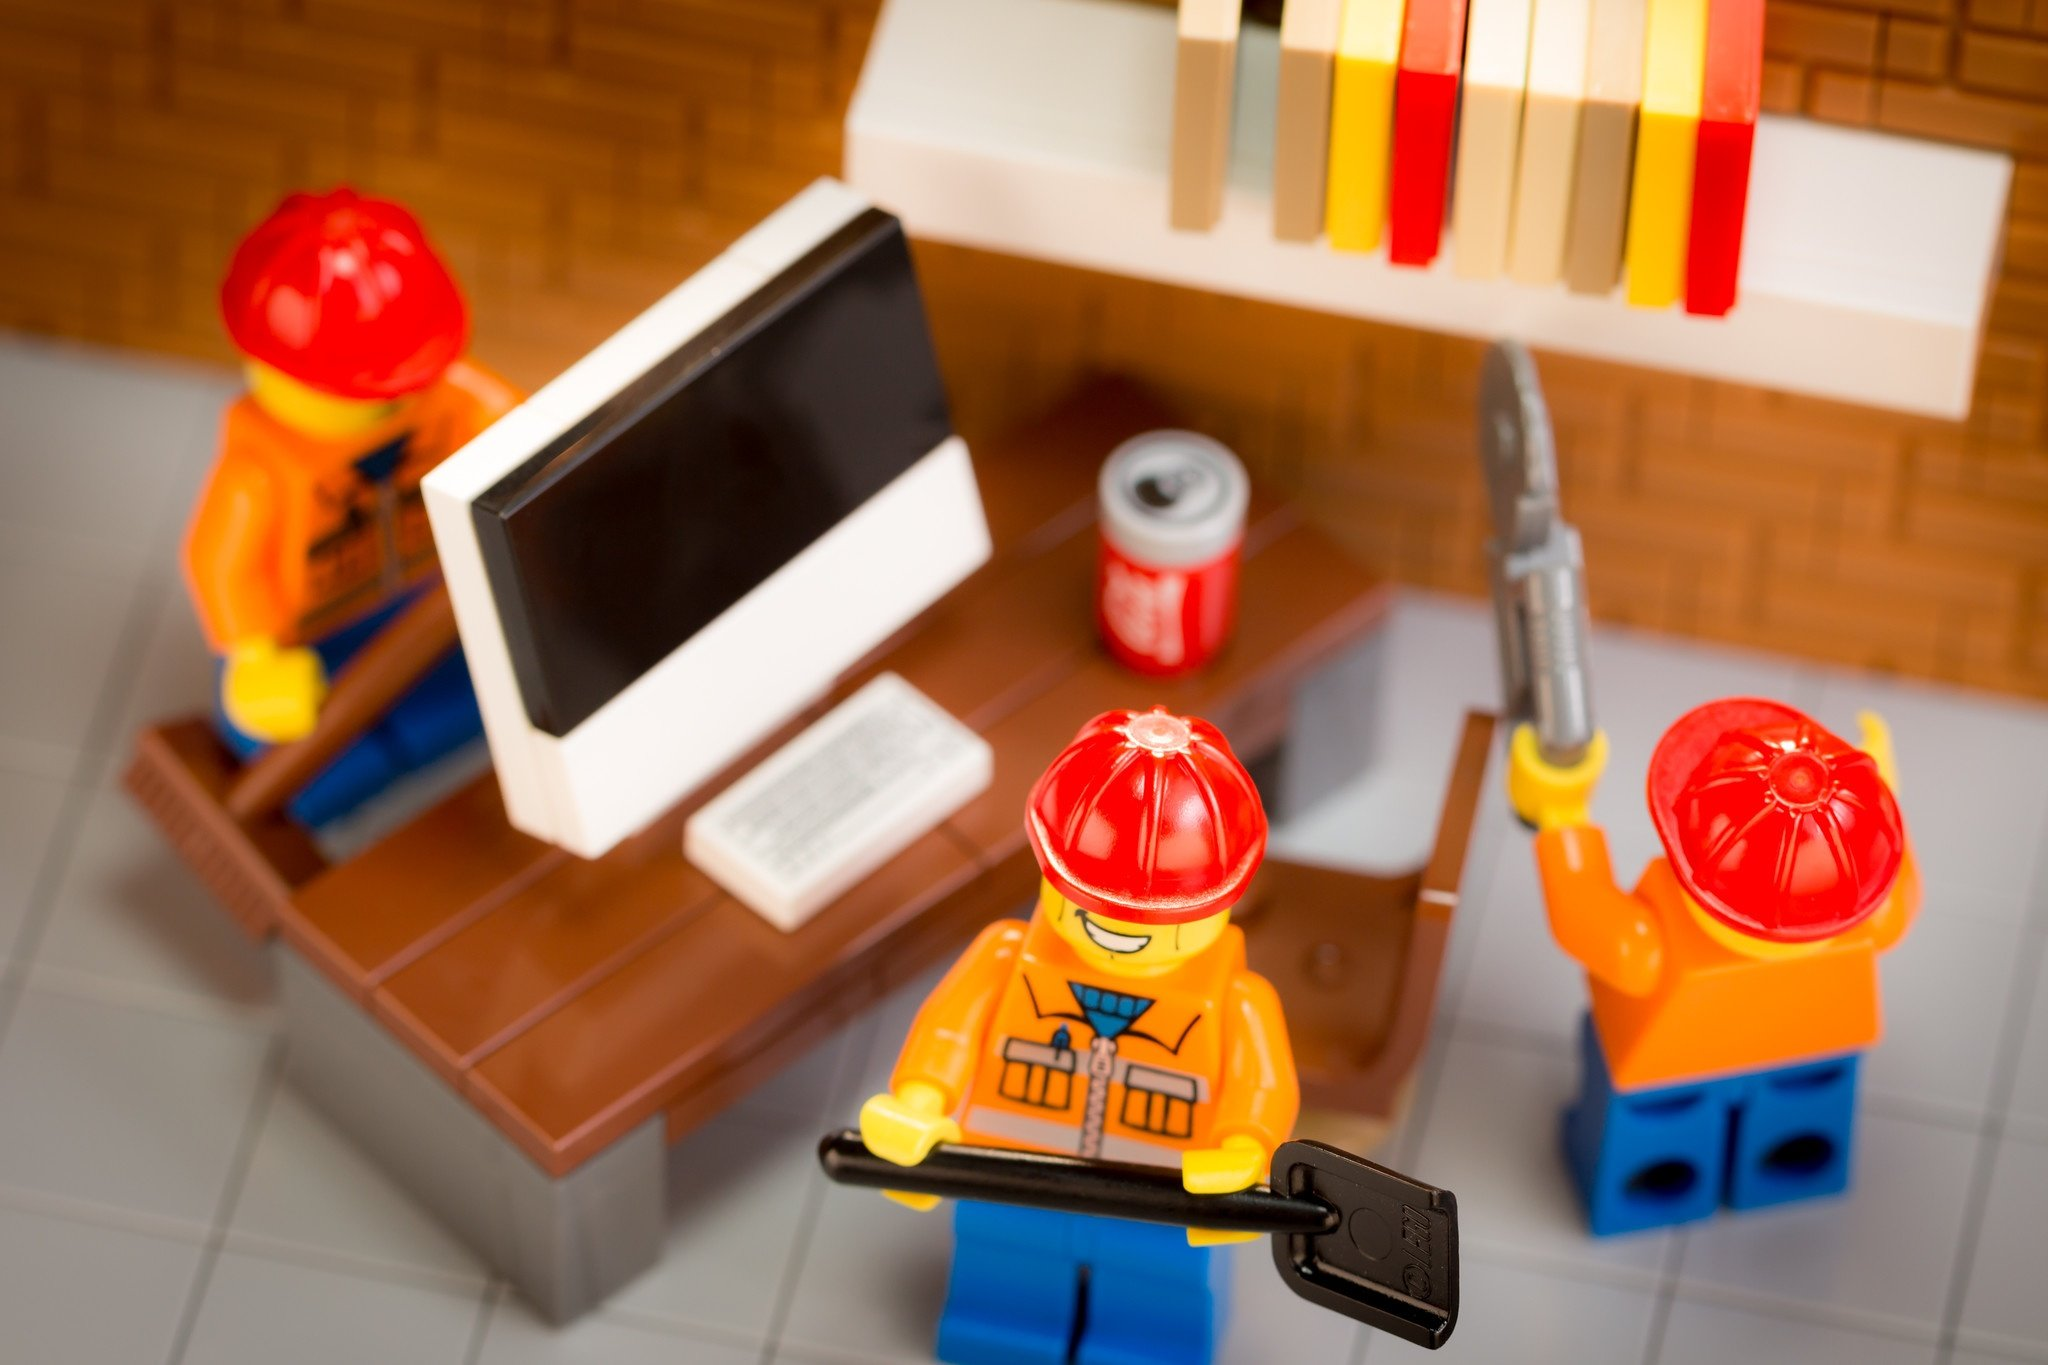 These LEGOs are creating an ergonomic desk.